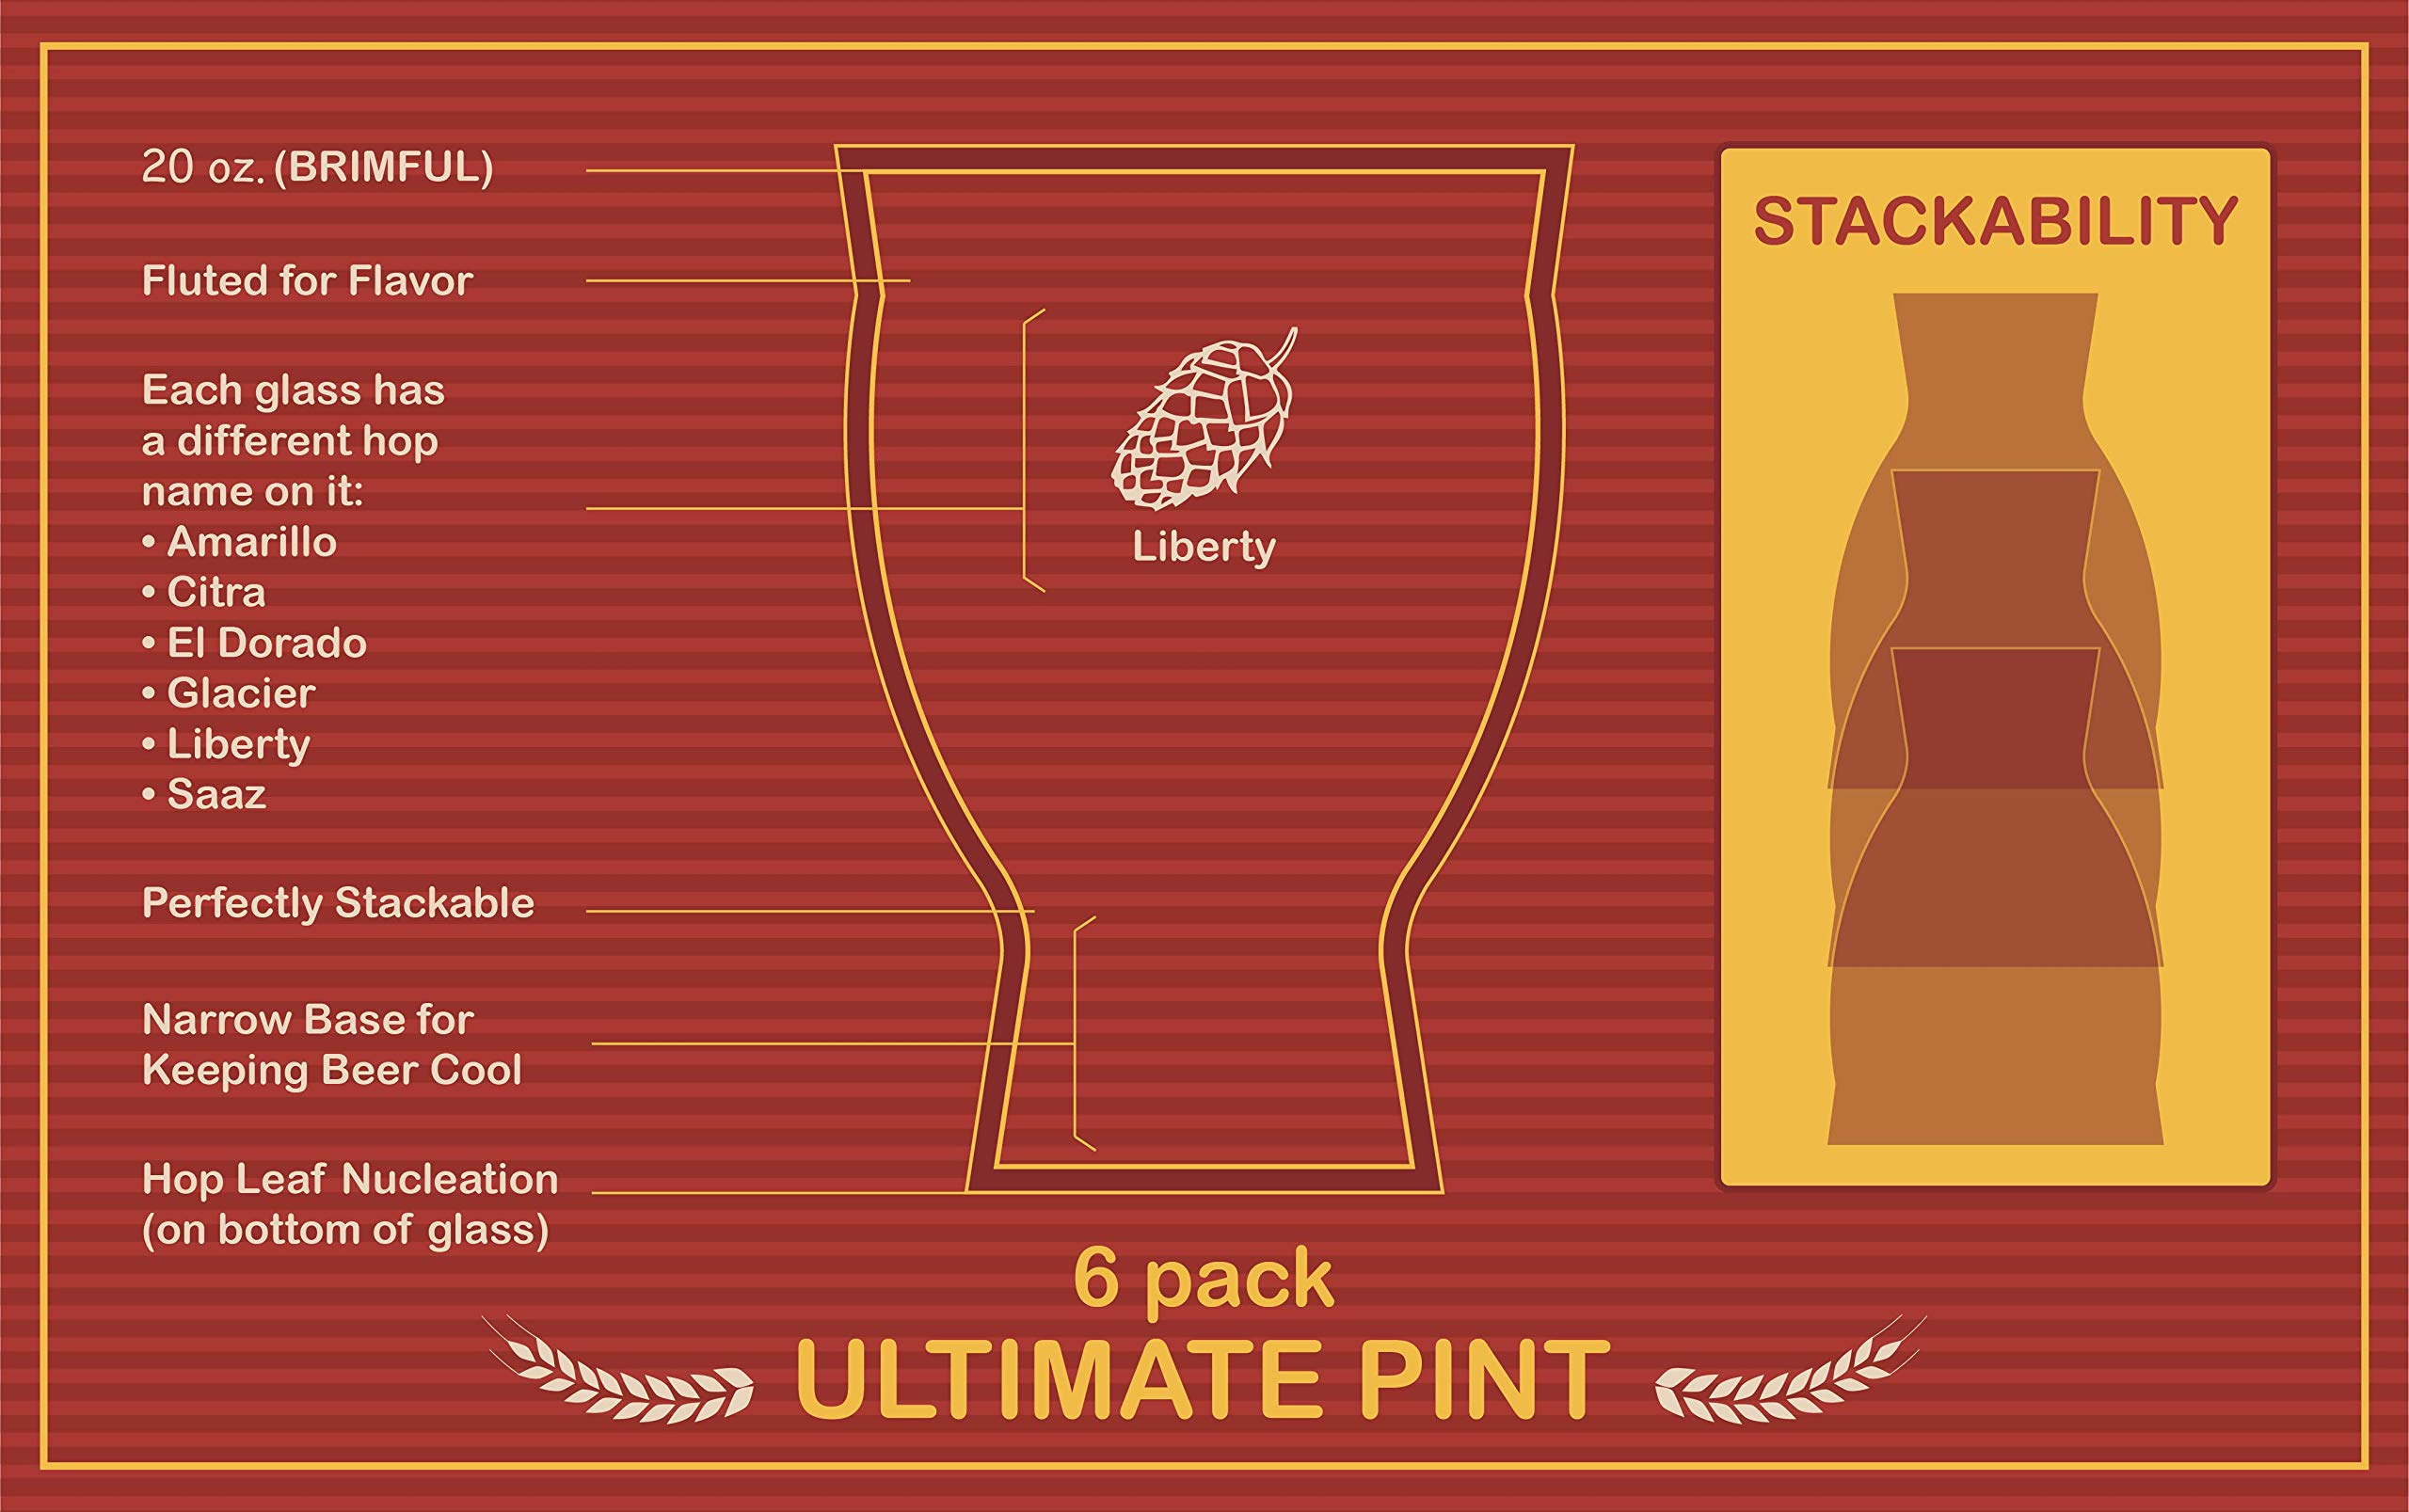 6 Pack 20oz Ultimate Pints - Each Glass is Uniquely Labeled - Never Lose Your Glass at a Party. by Cheers All (Image #7)